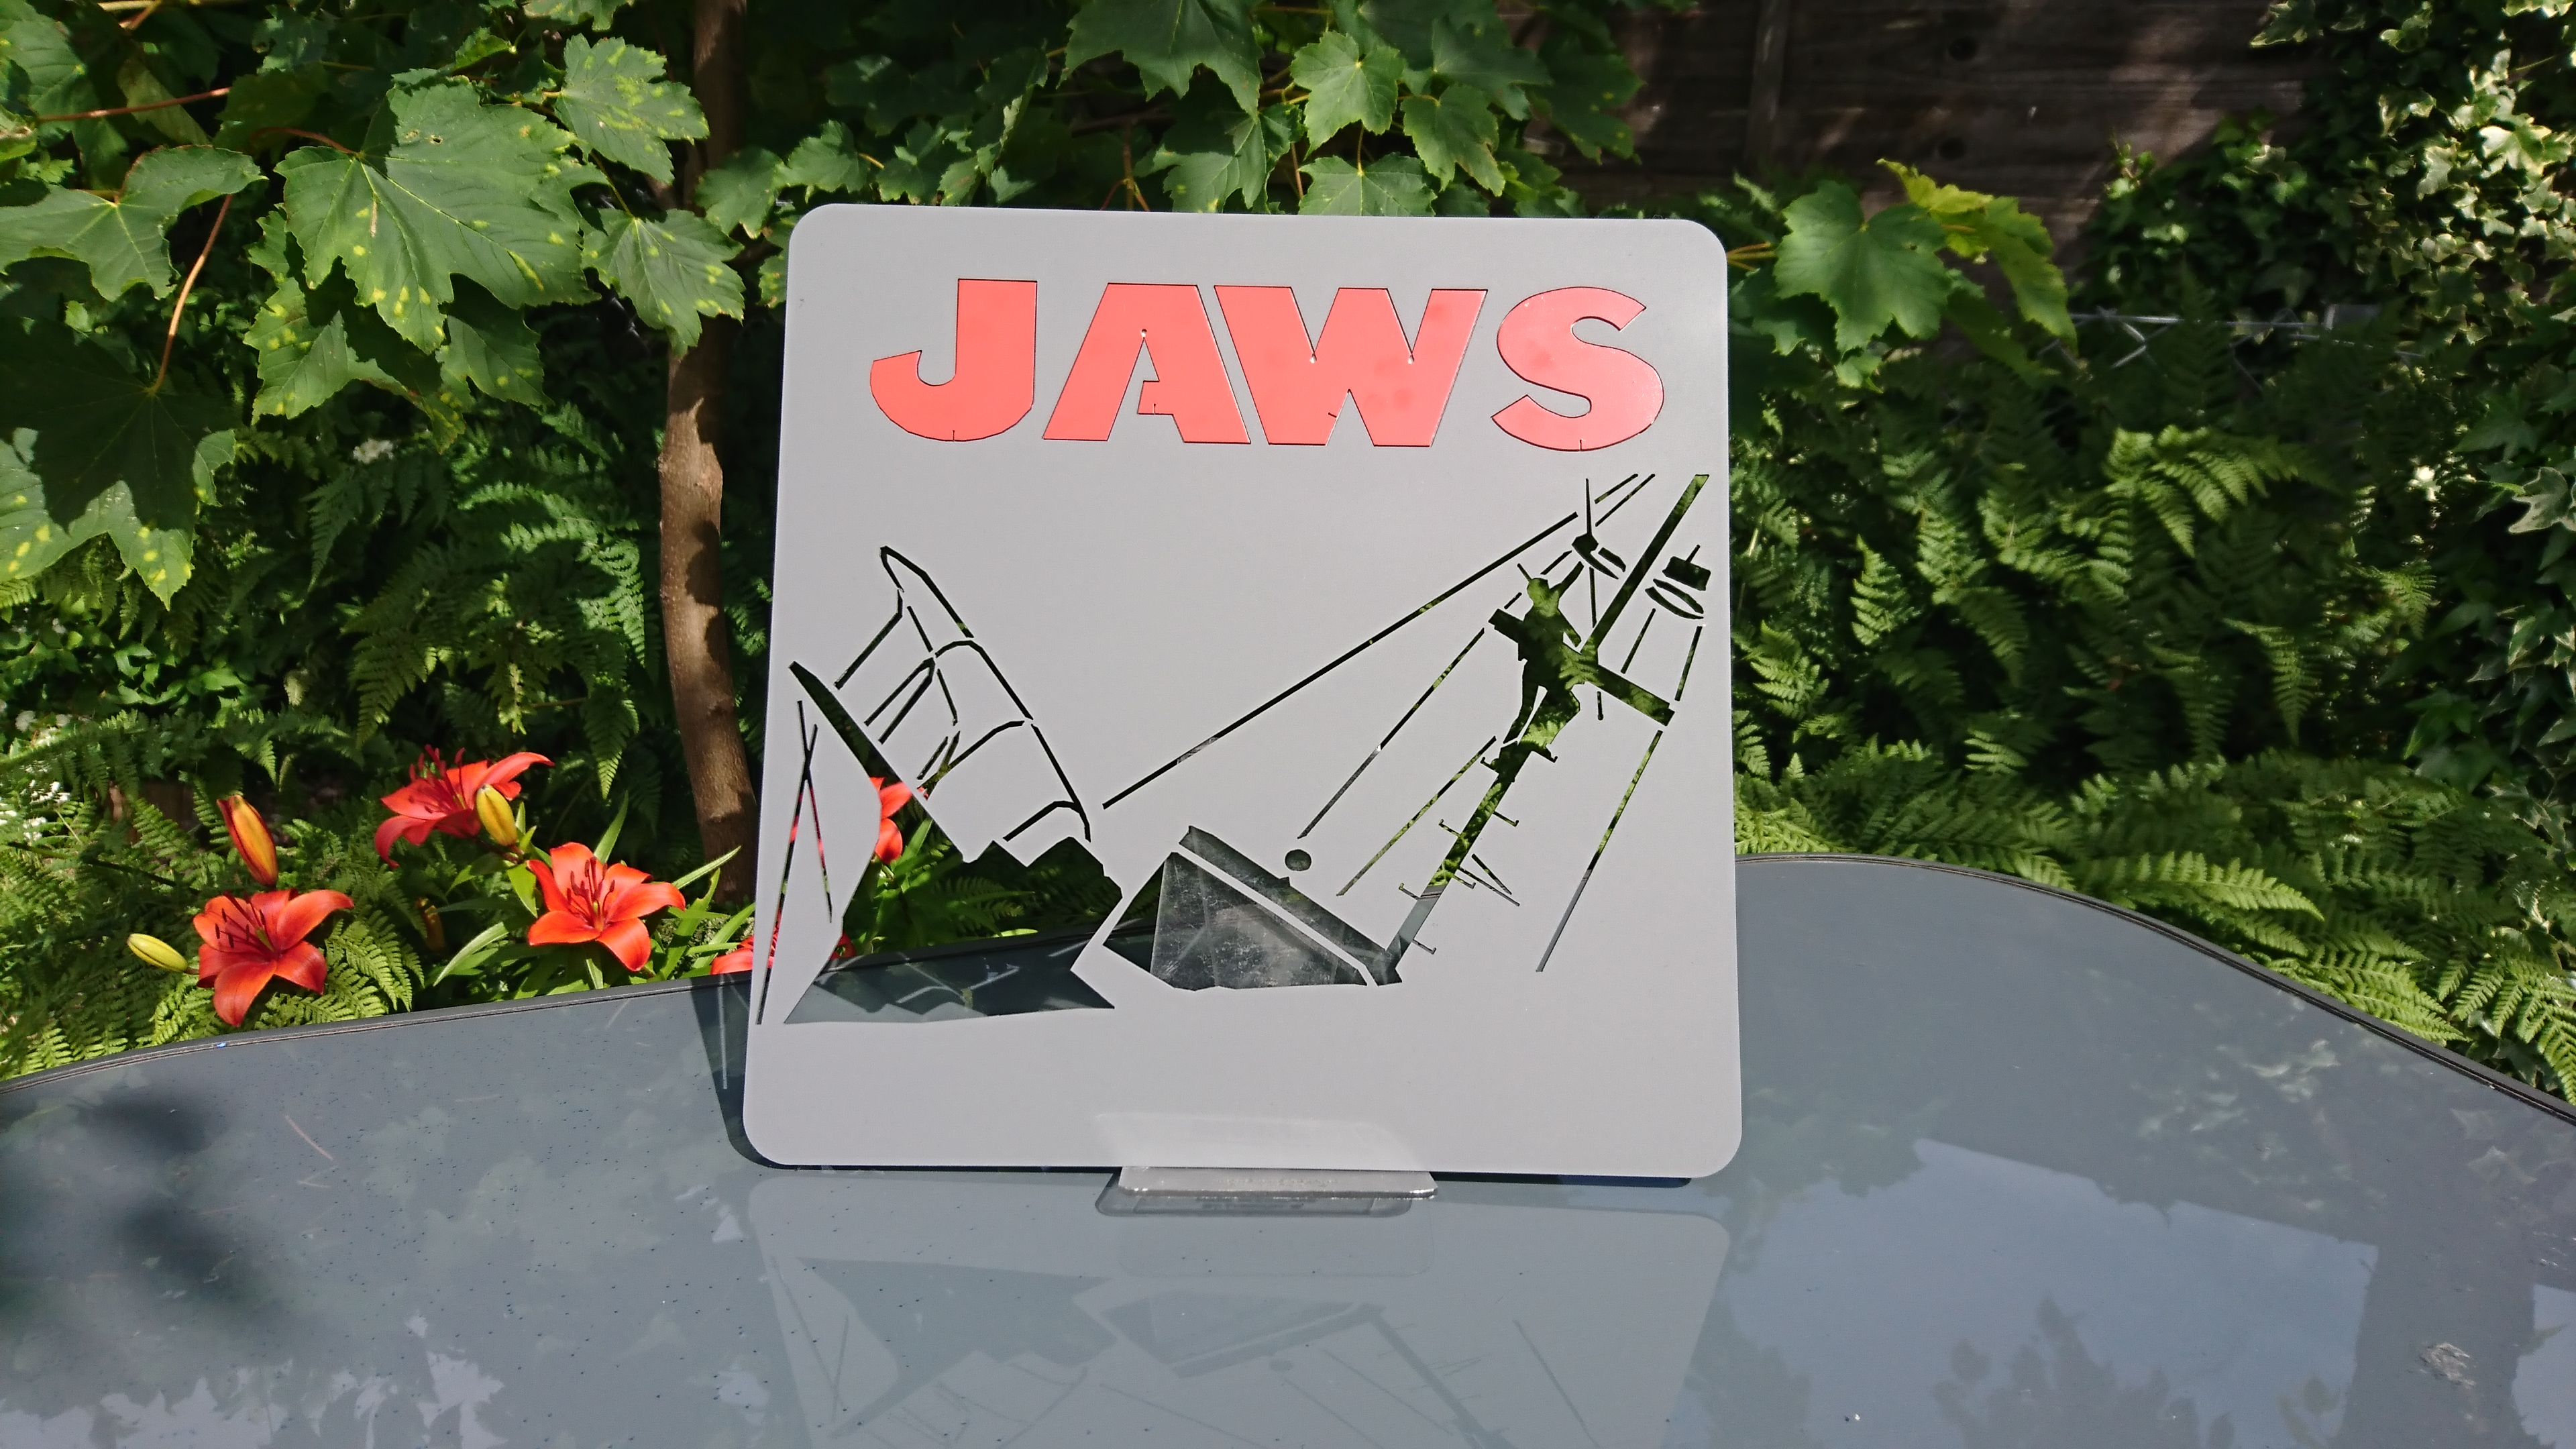 JAWS #1